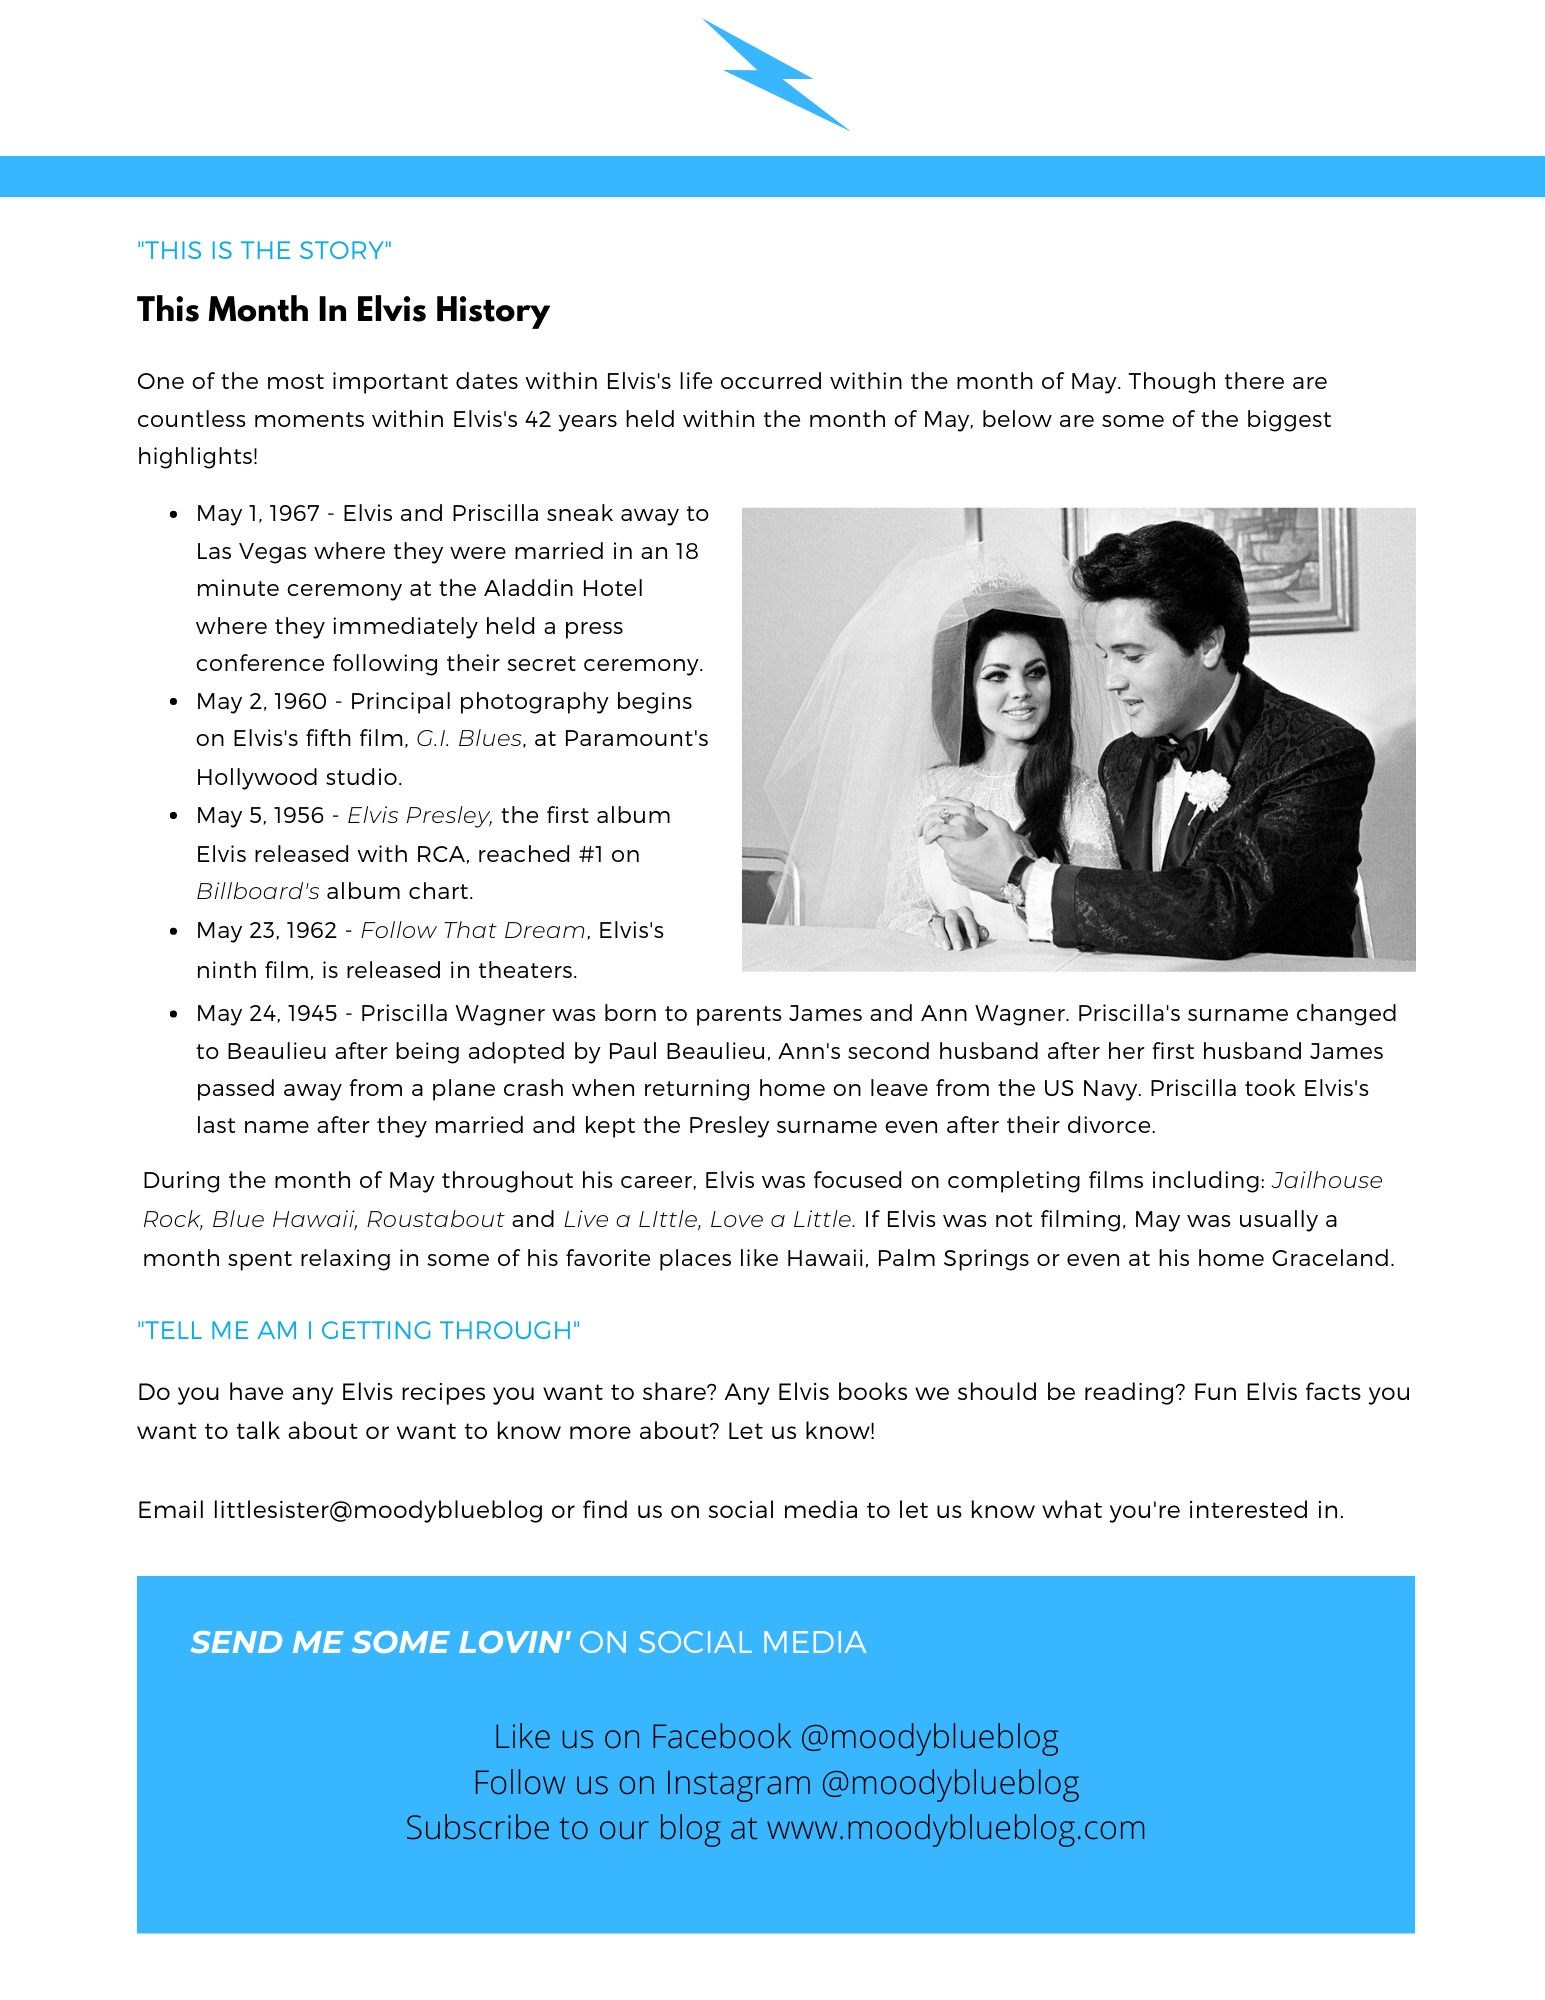 This Month in Elvis History (May)